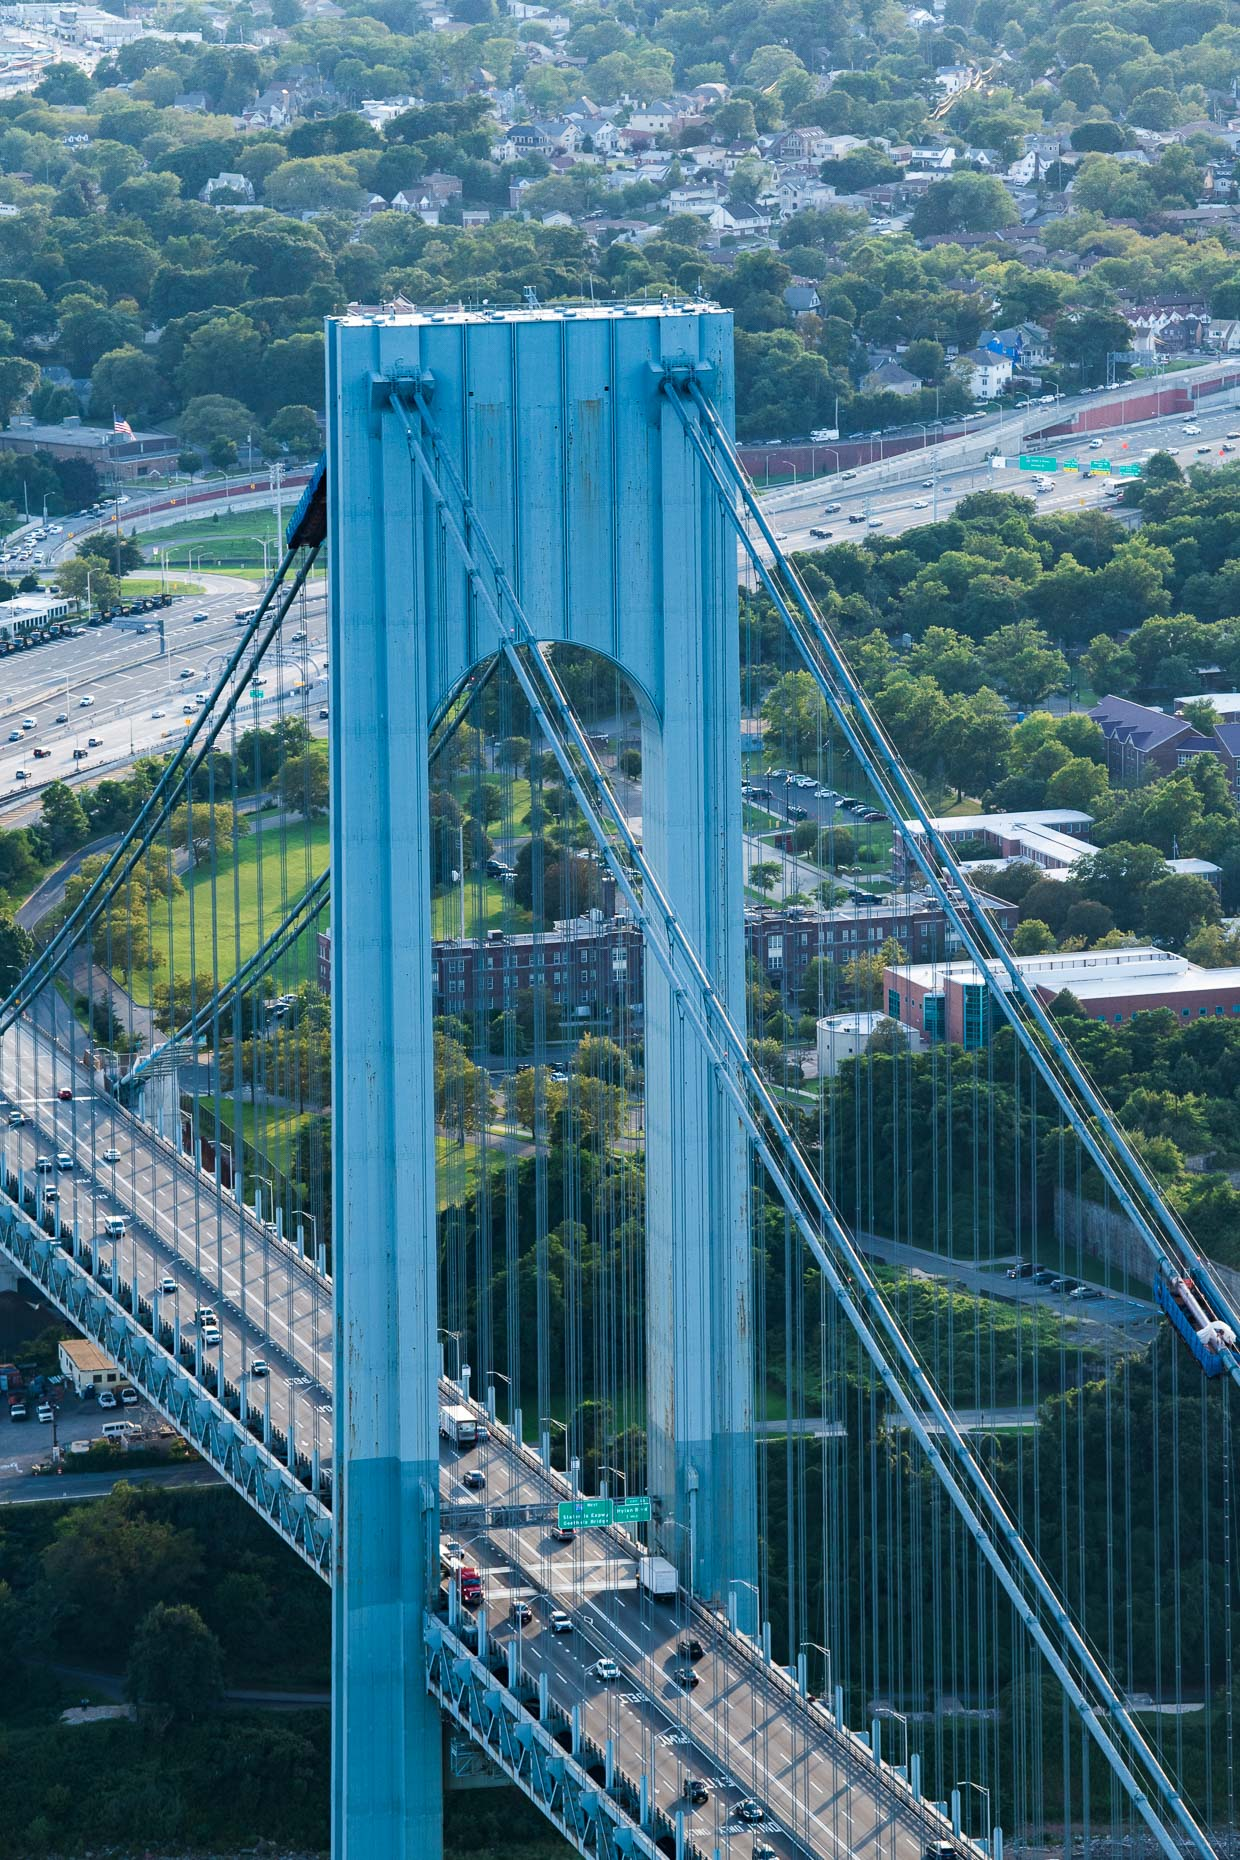 Helicopter views of Verrazzano Bridge